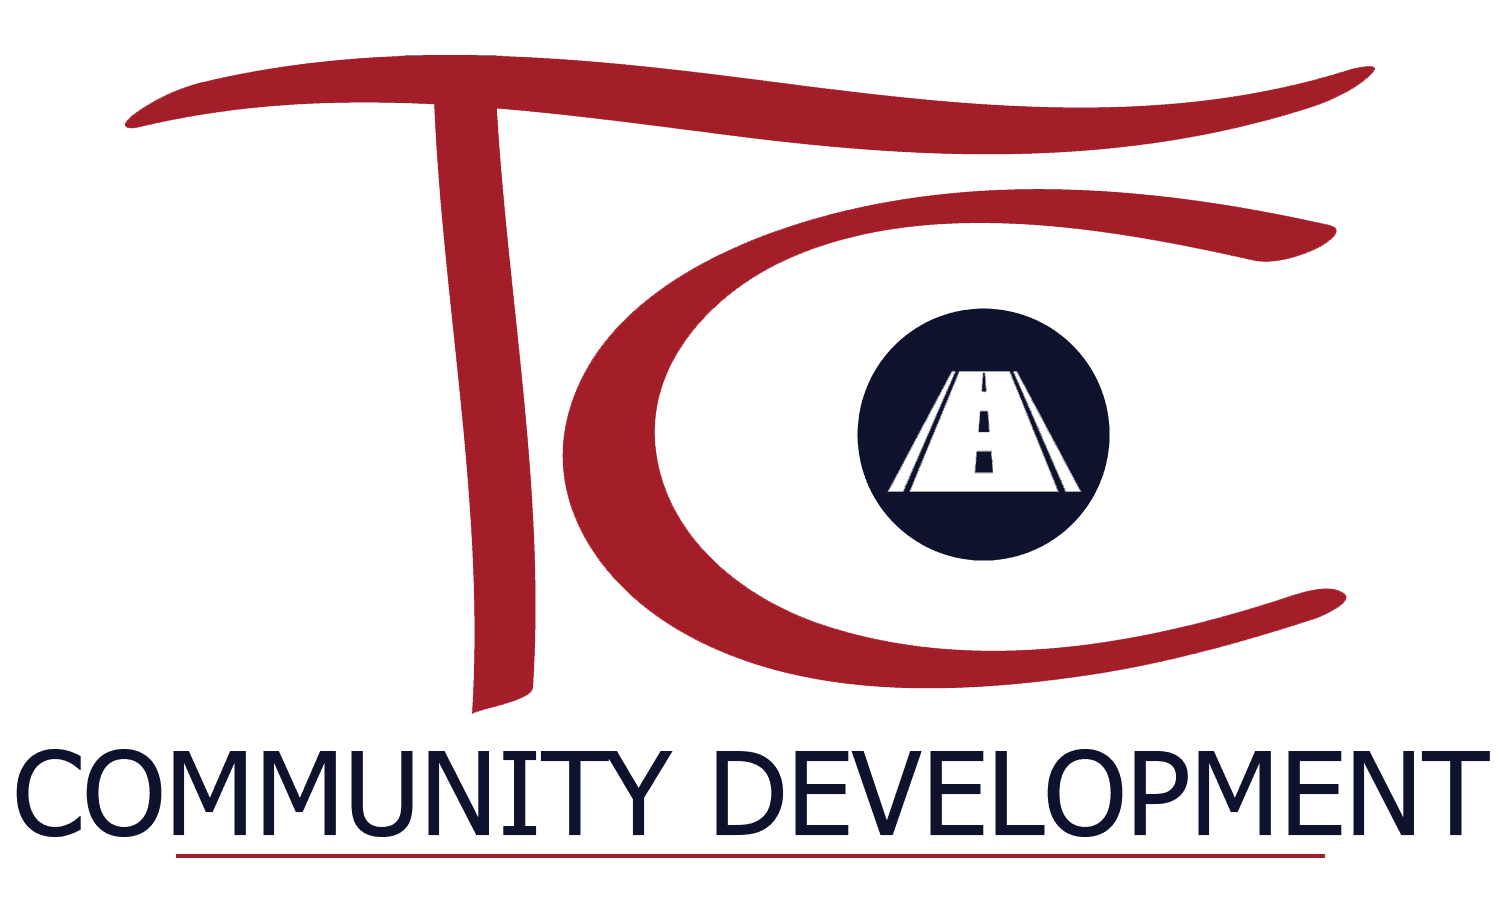 TC Community Development Icon Dept Logo Navy Red Line - Color w Transparent Background